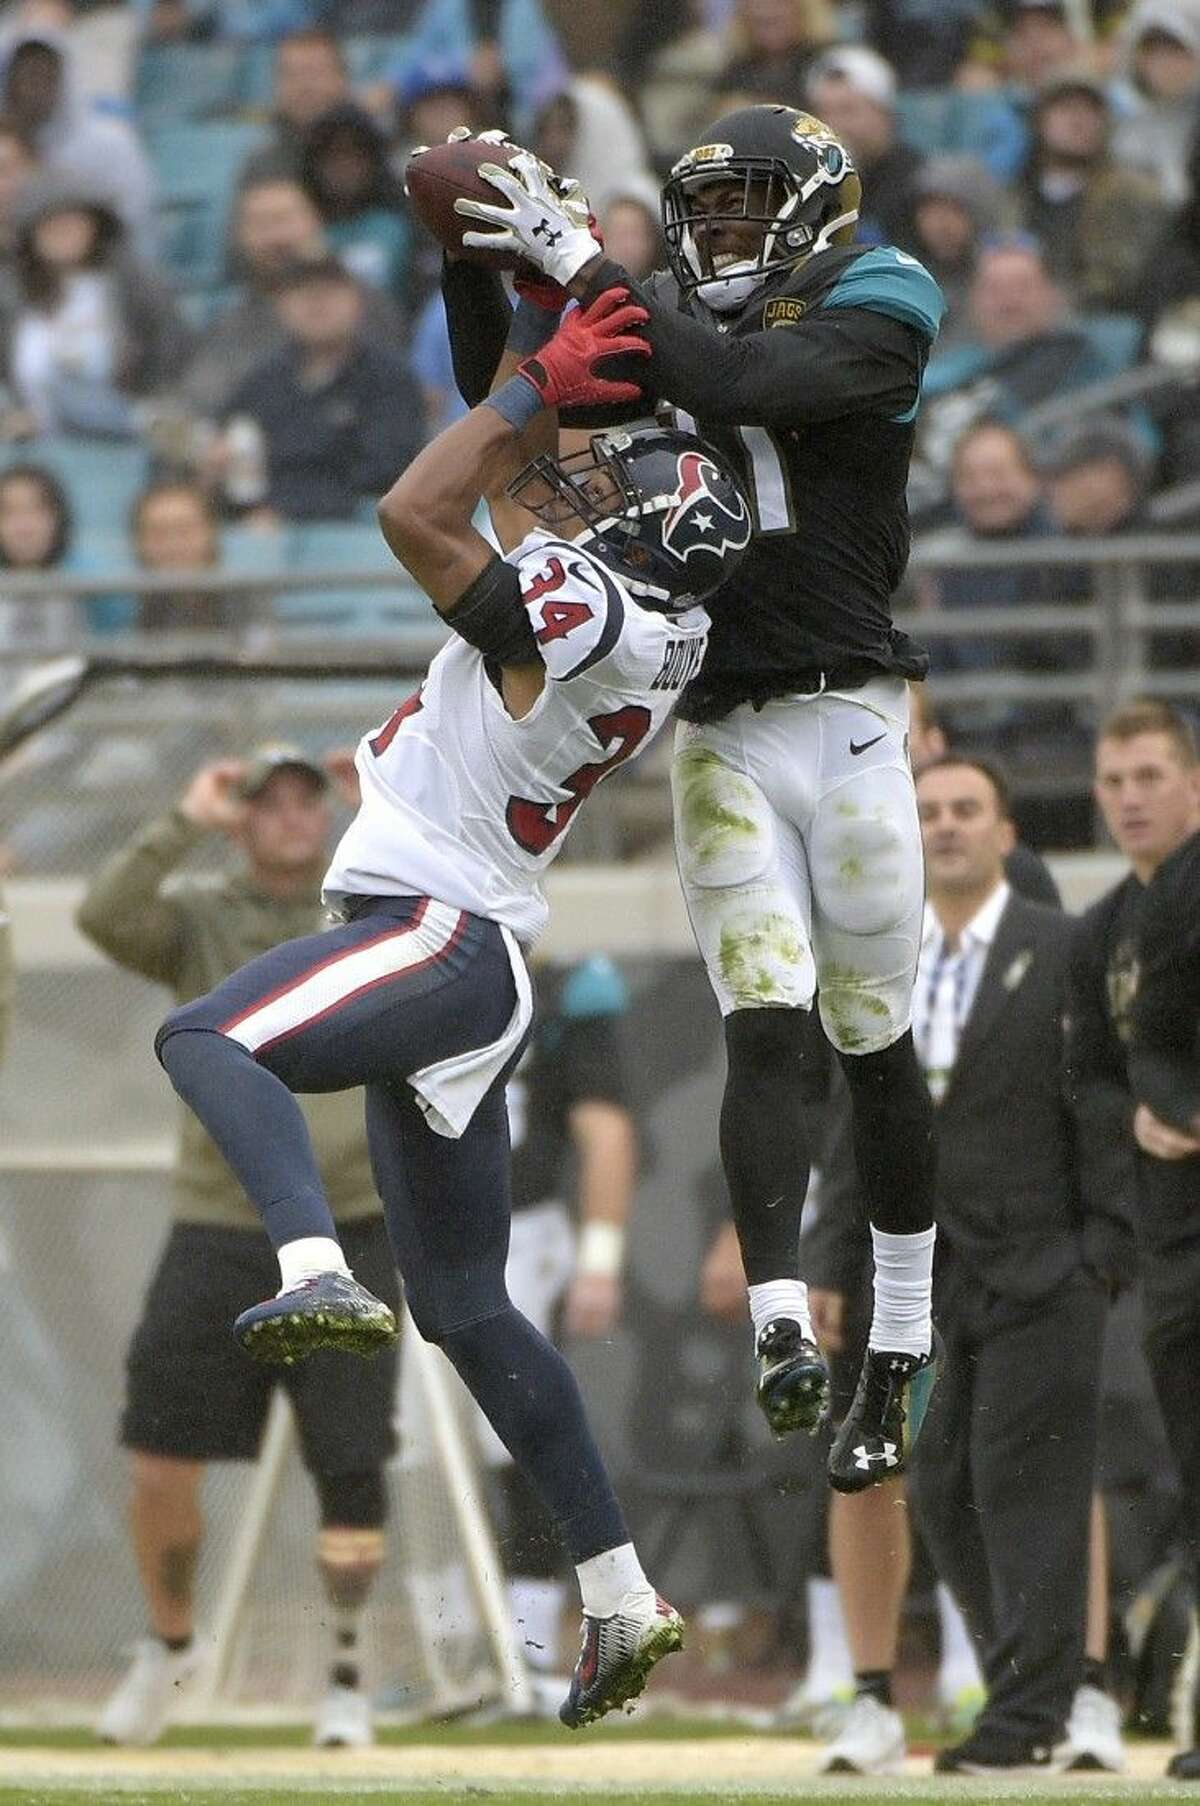 Texans defensive back A.J. Bouye (34) battles Jaguars wide receiver Marqise Lee for the ball. The Texans face the Colts on Sunday.